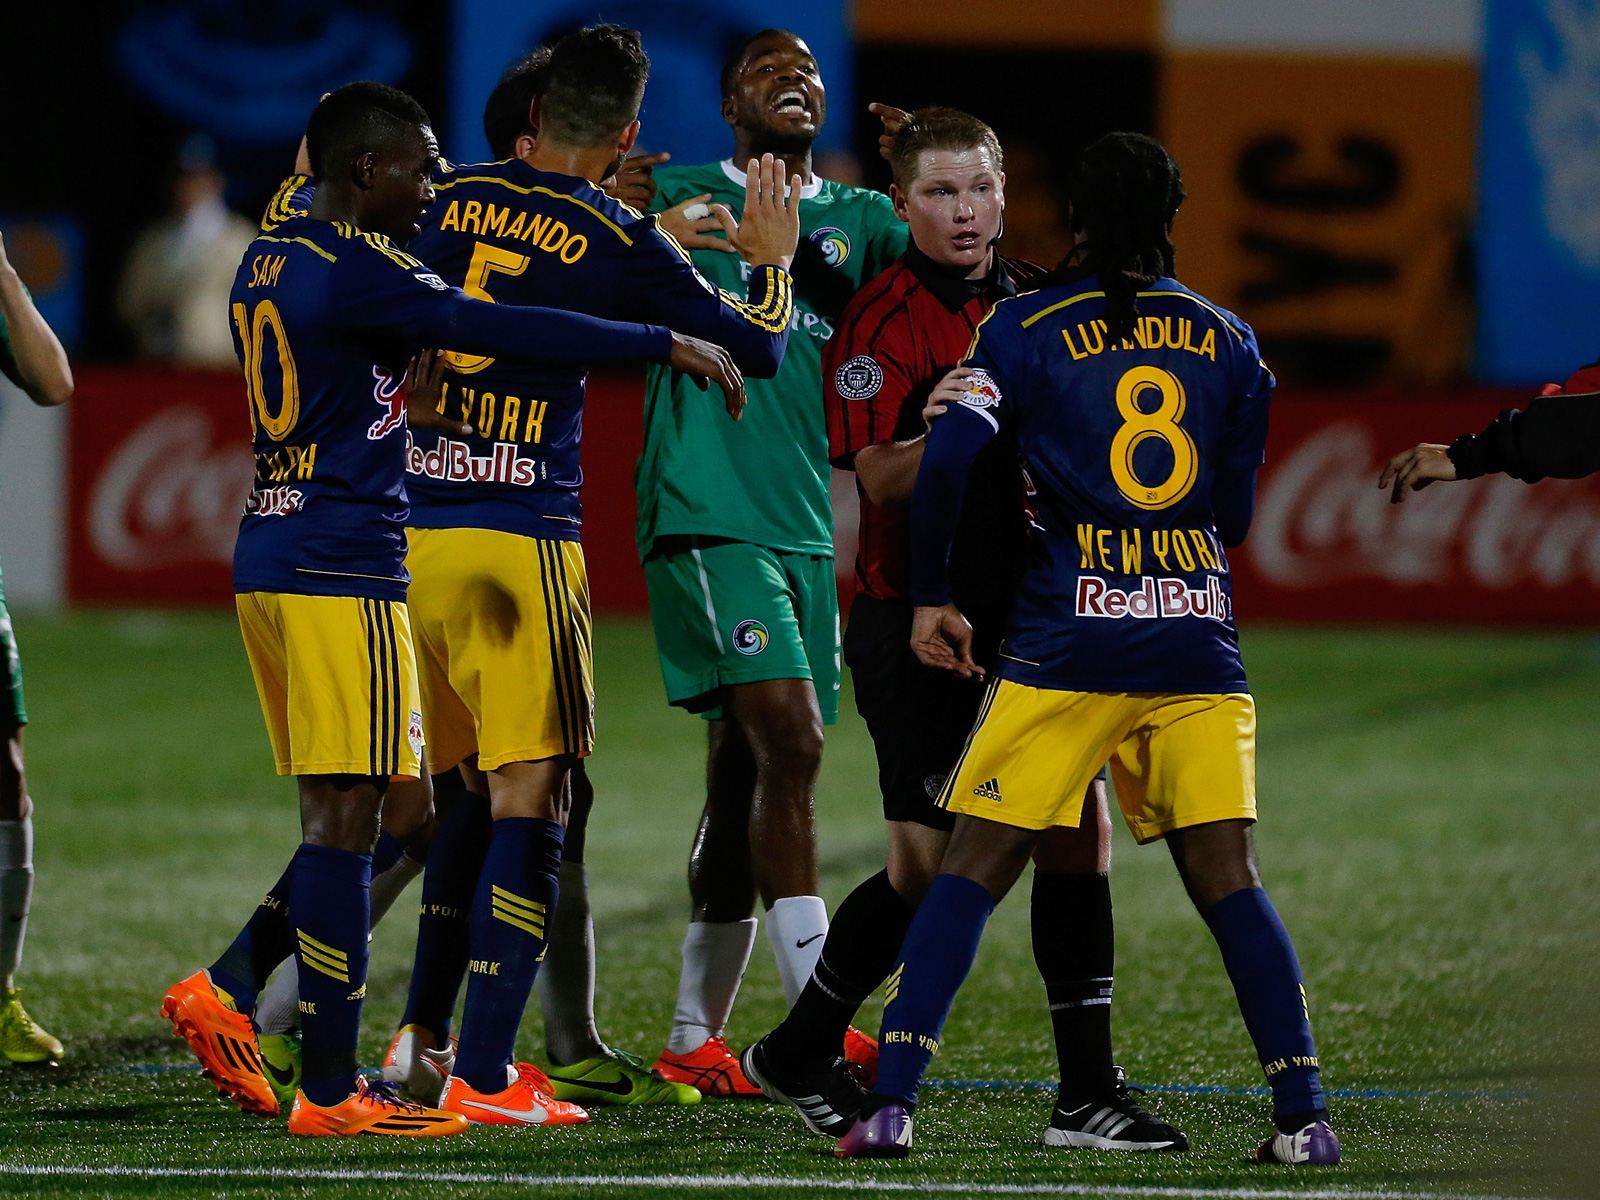 Tempers flare in the New York Red Bulls' 2014 U.S. Open Cup match against the New York Cosmos, which was won by the NASL team 3-0.